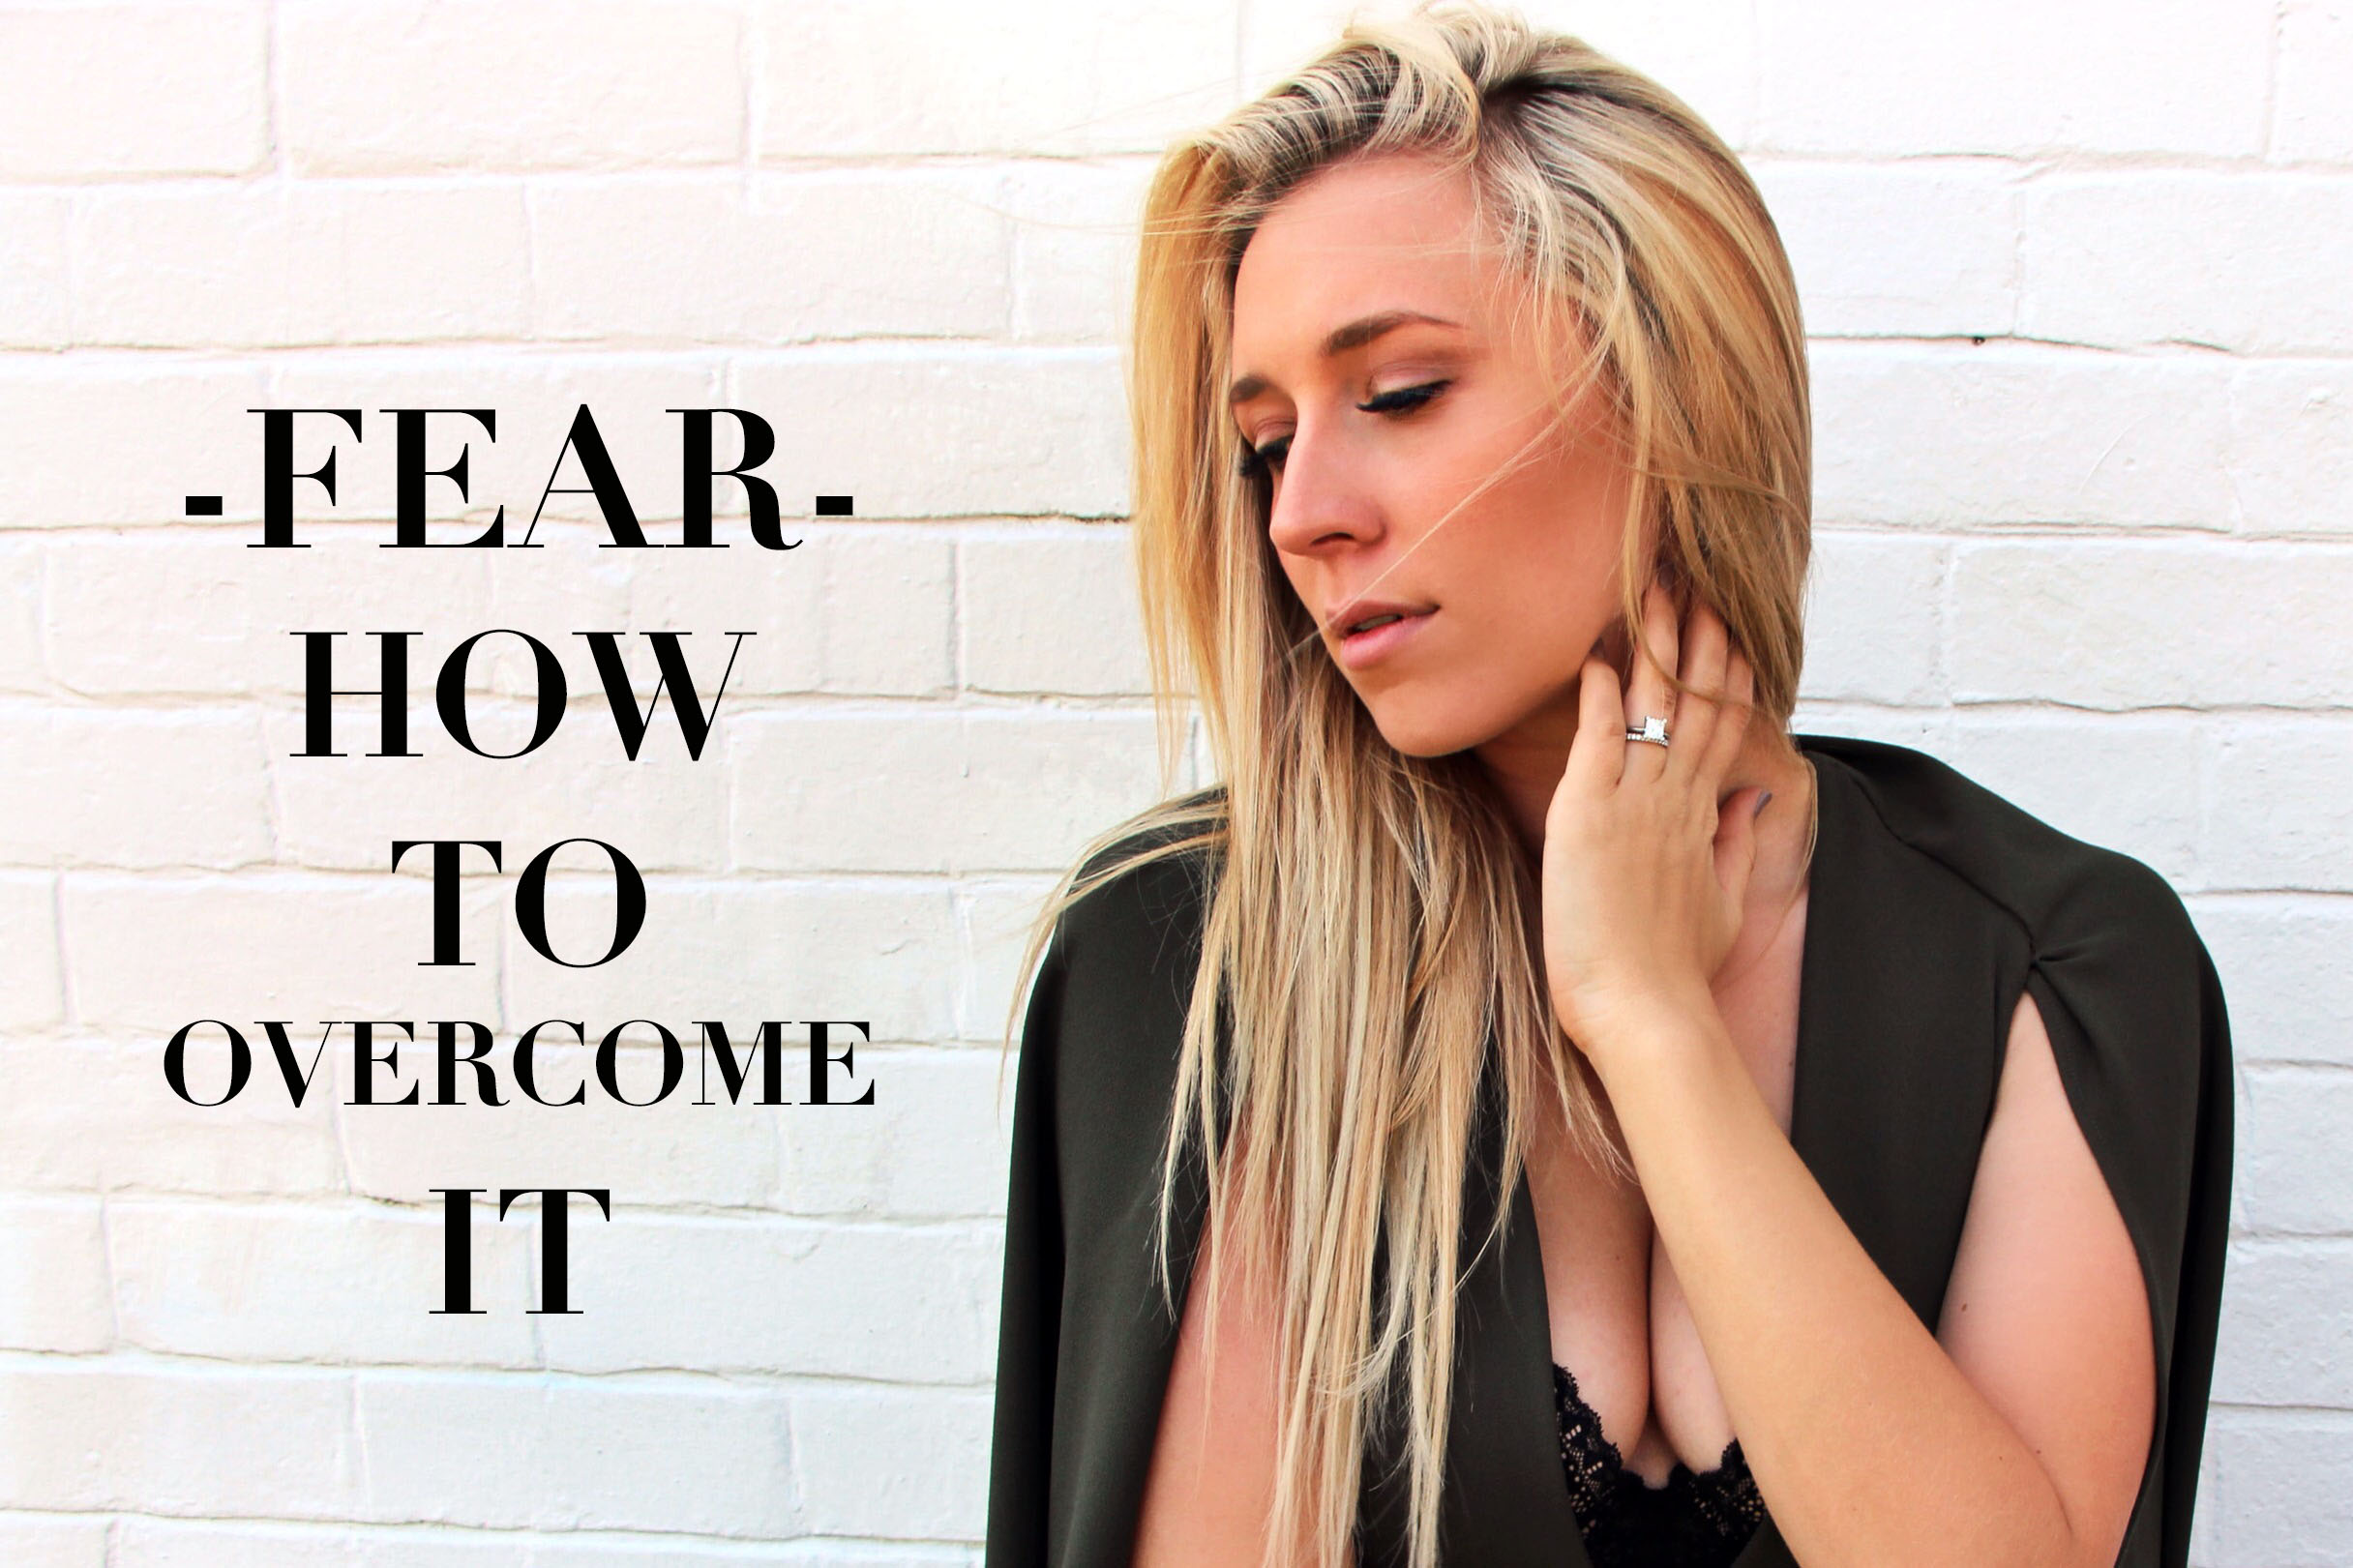 fear how to overcome it